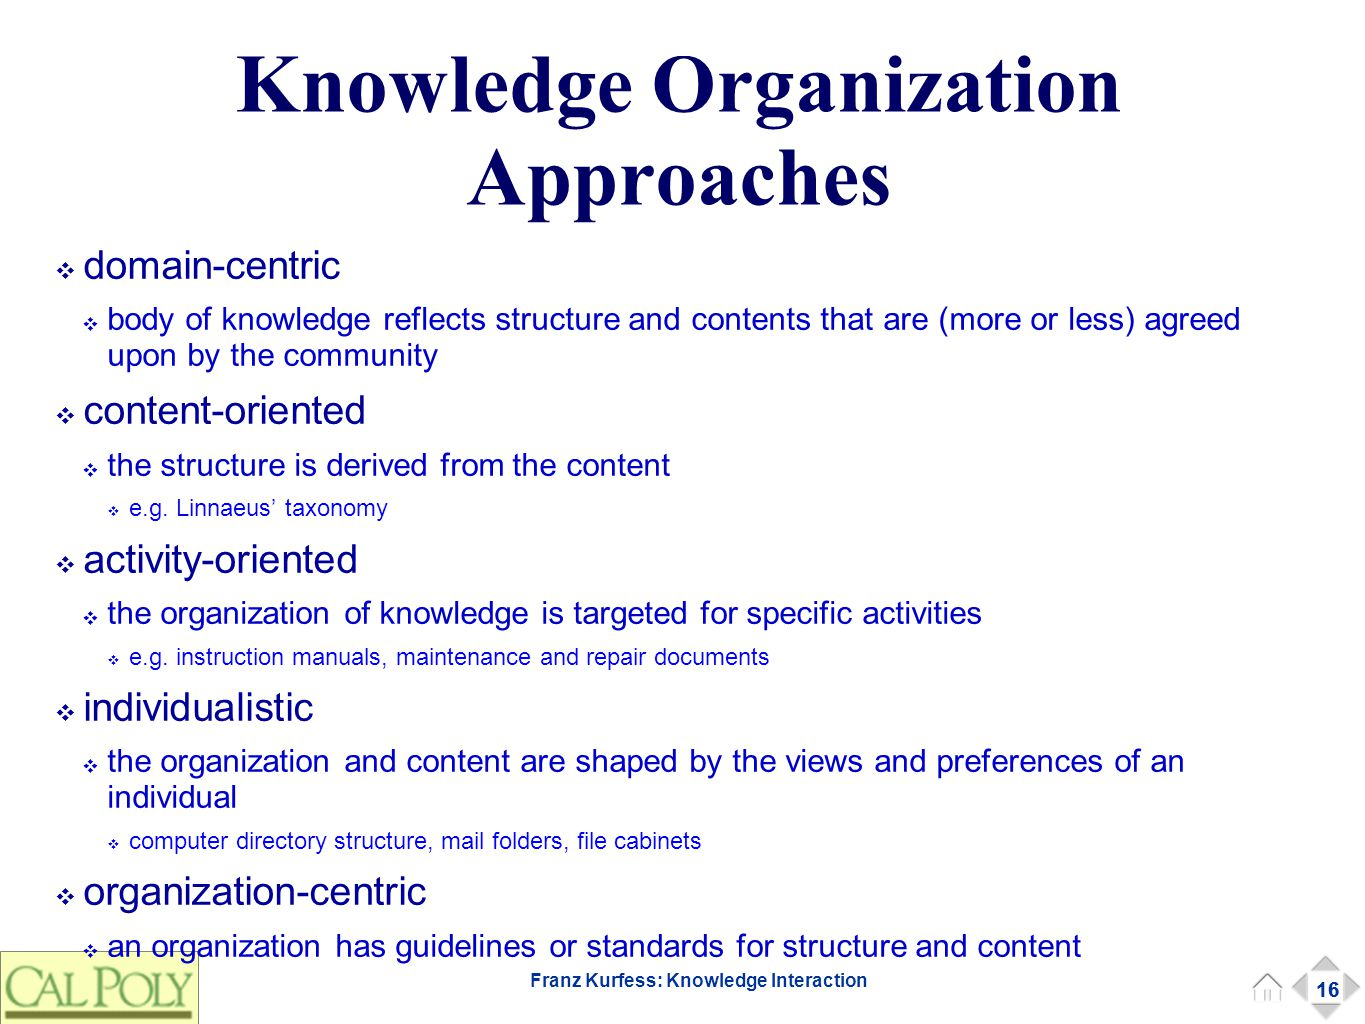 16 Franz Kurfess: Knowledge Interaction Knowledge Organization Approaches ❖ domain-centric ❖ body of knowledge reflects structure and contents that are (more or less) agreed upon by the community ❖ content-oriented ❖ the structure is derived from the content ❖ e.g.